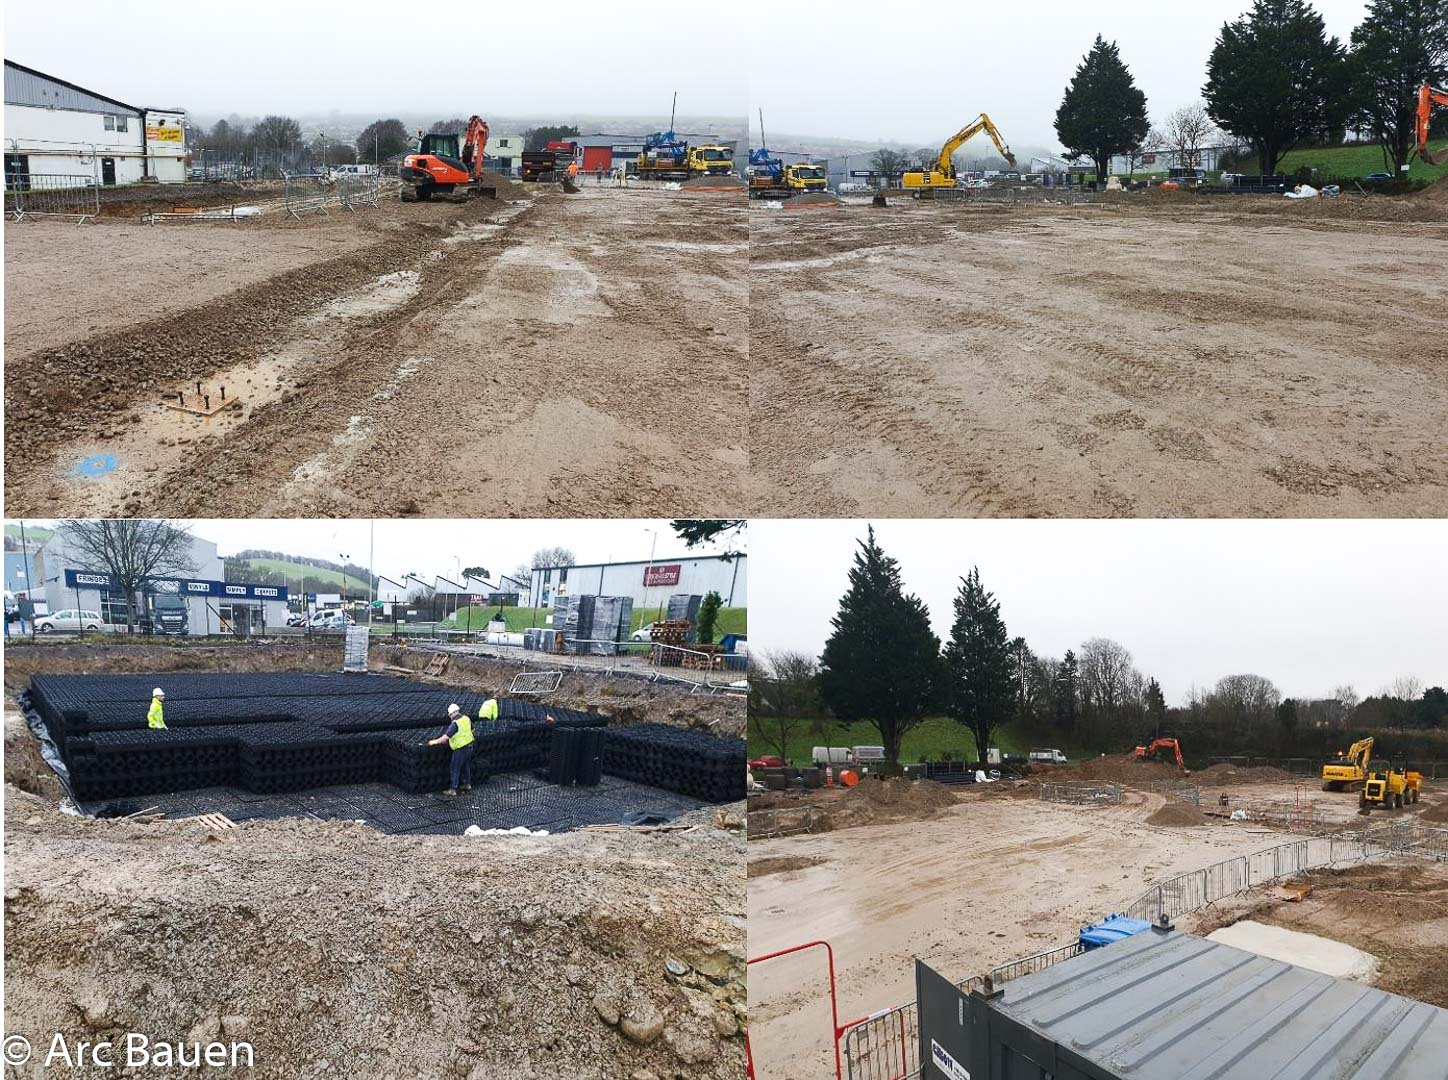 Aldi Plympton on site and in construction